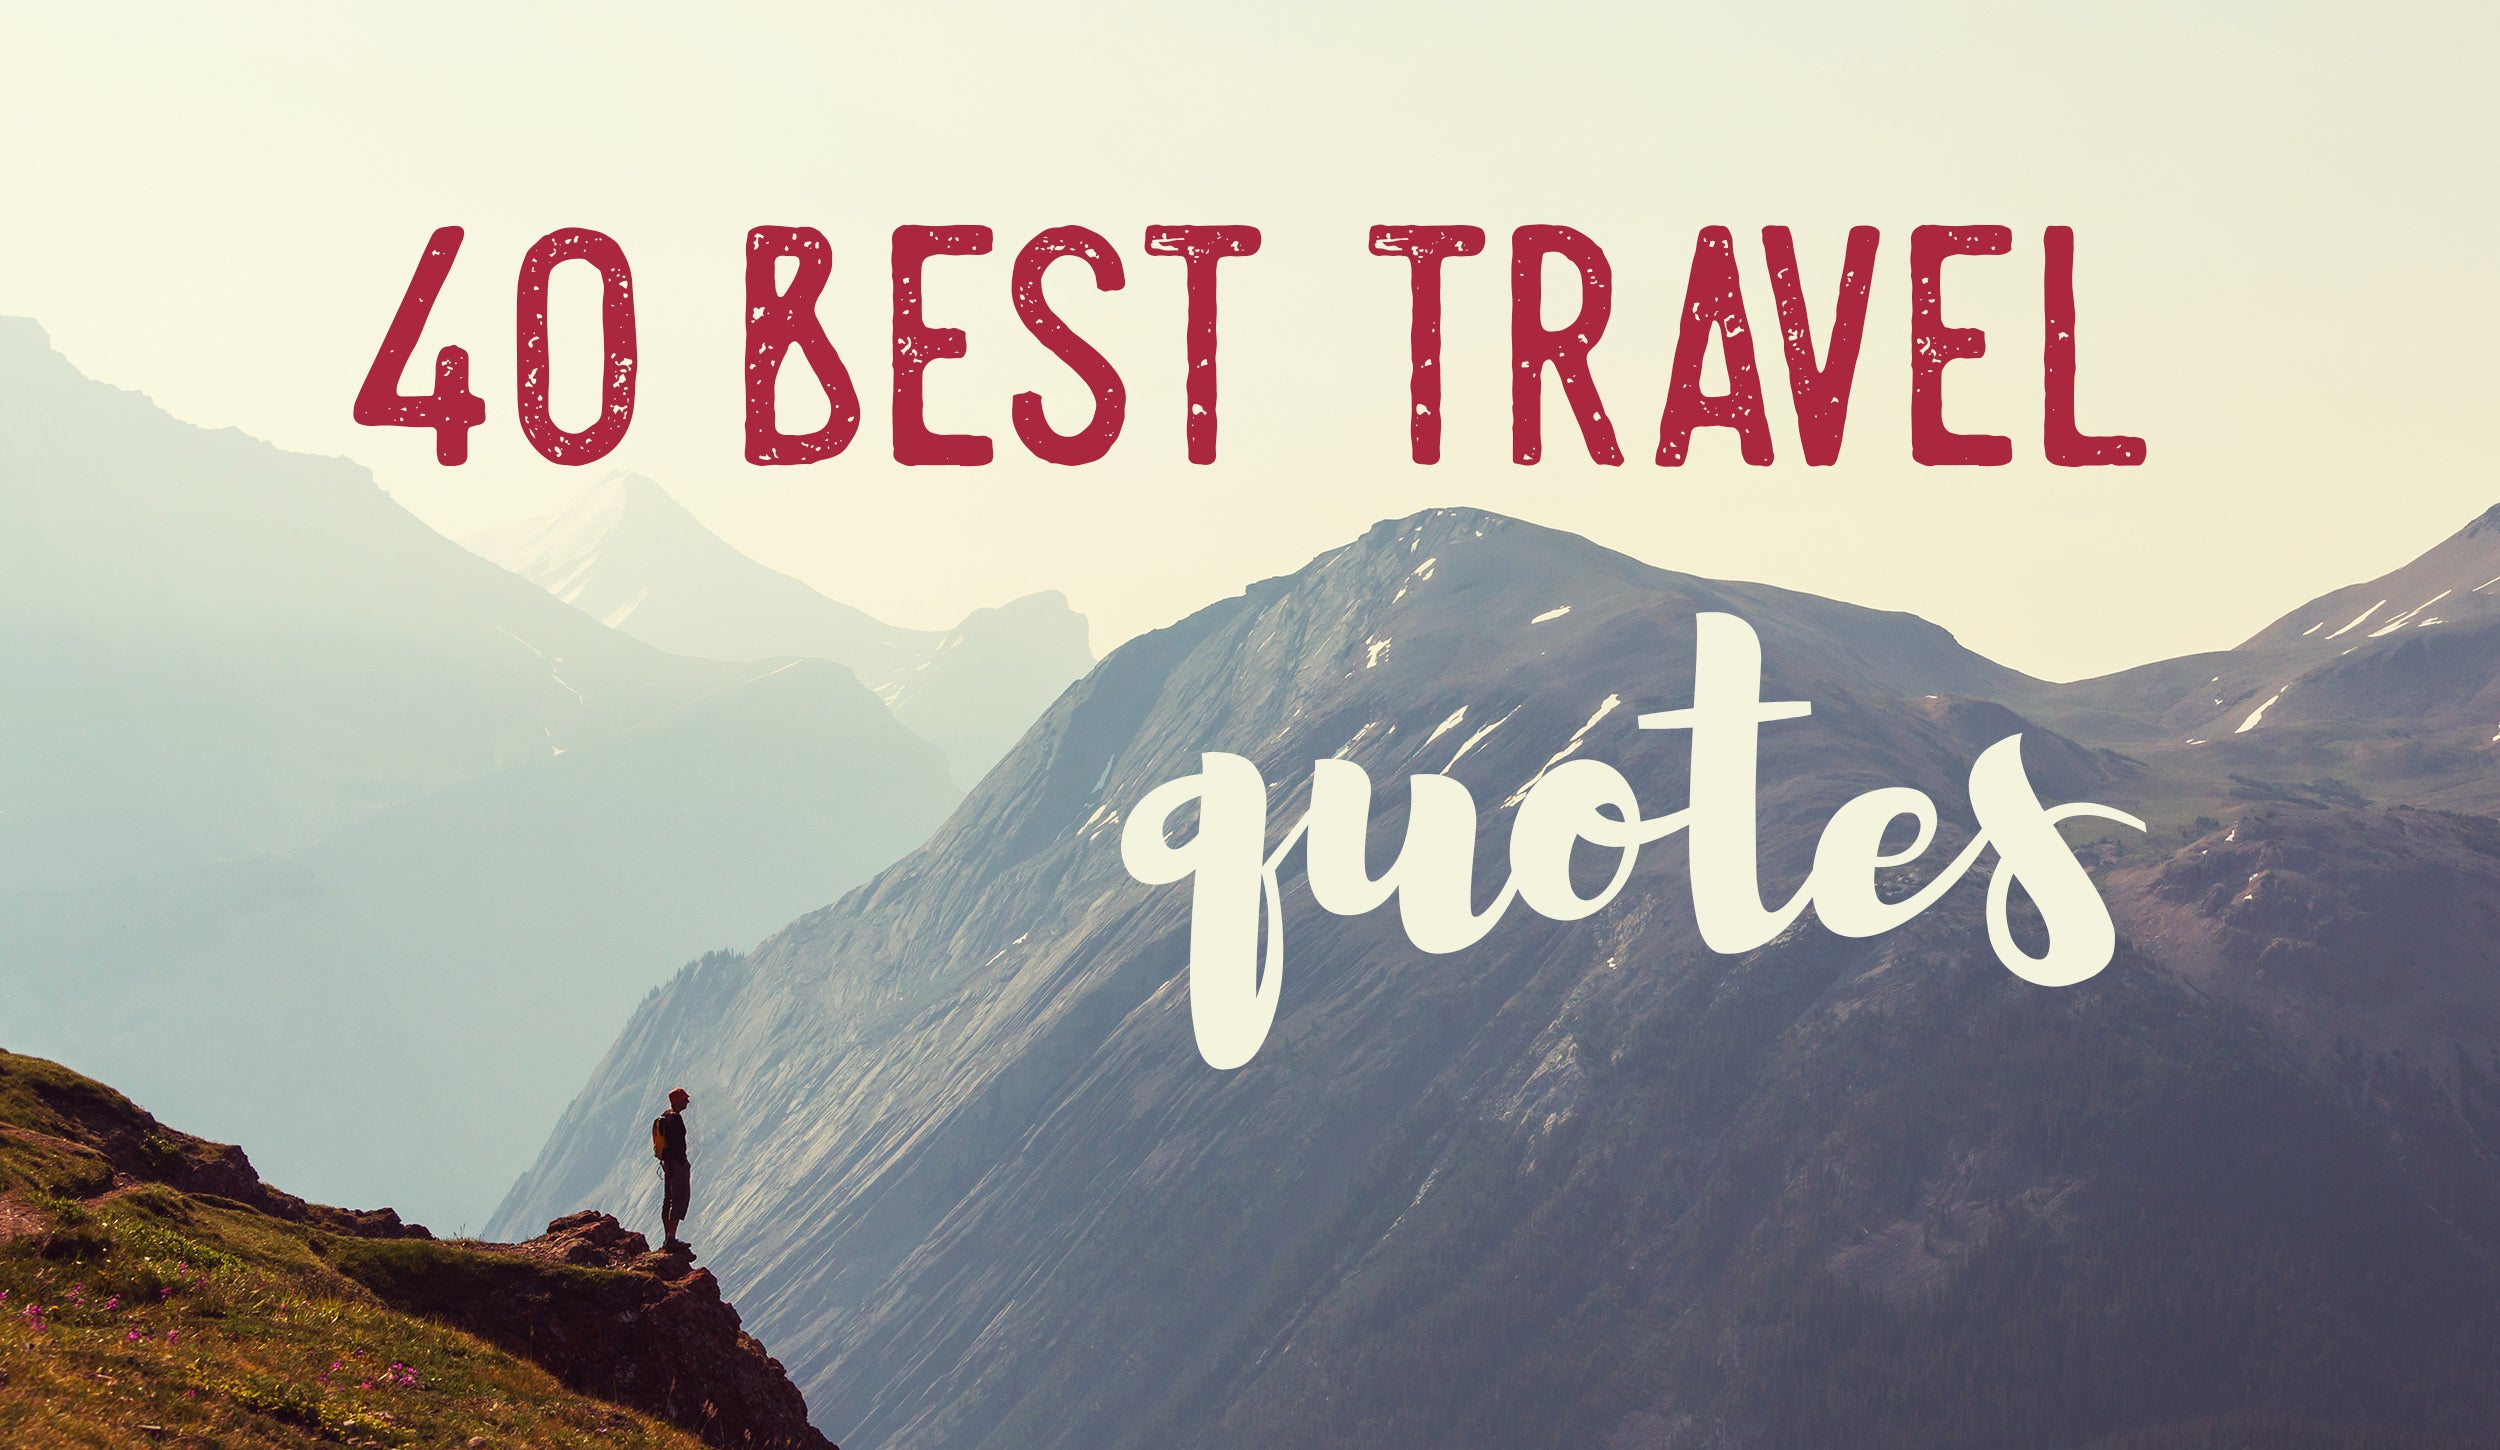 40 Best Travel Quotes